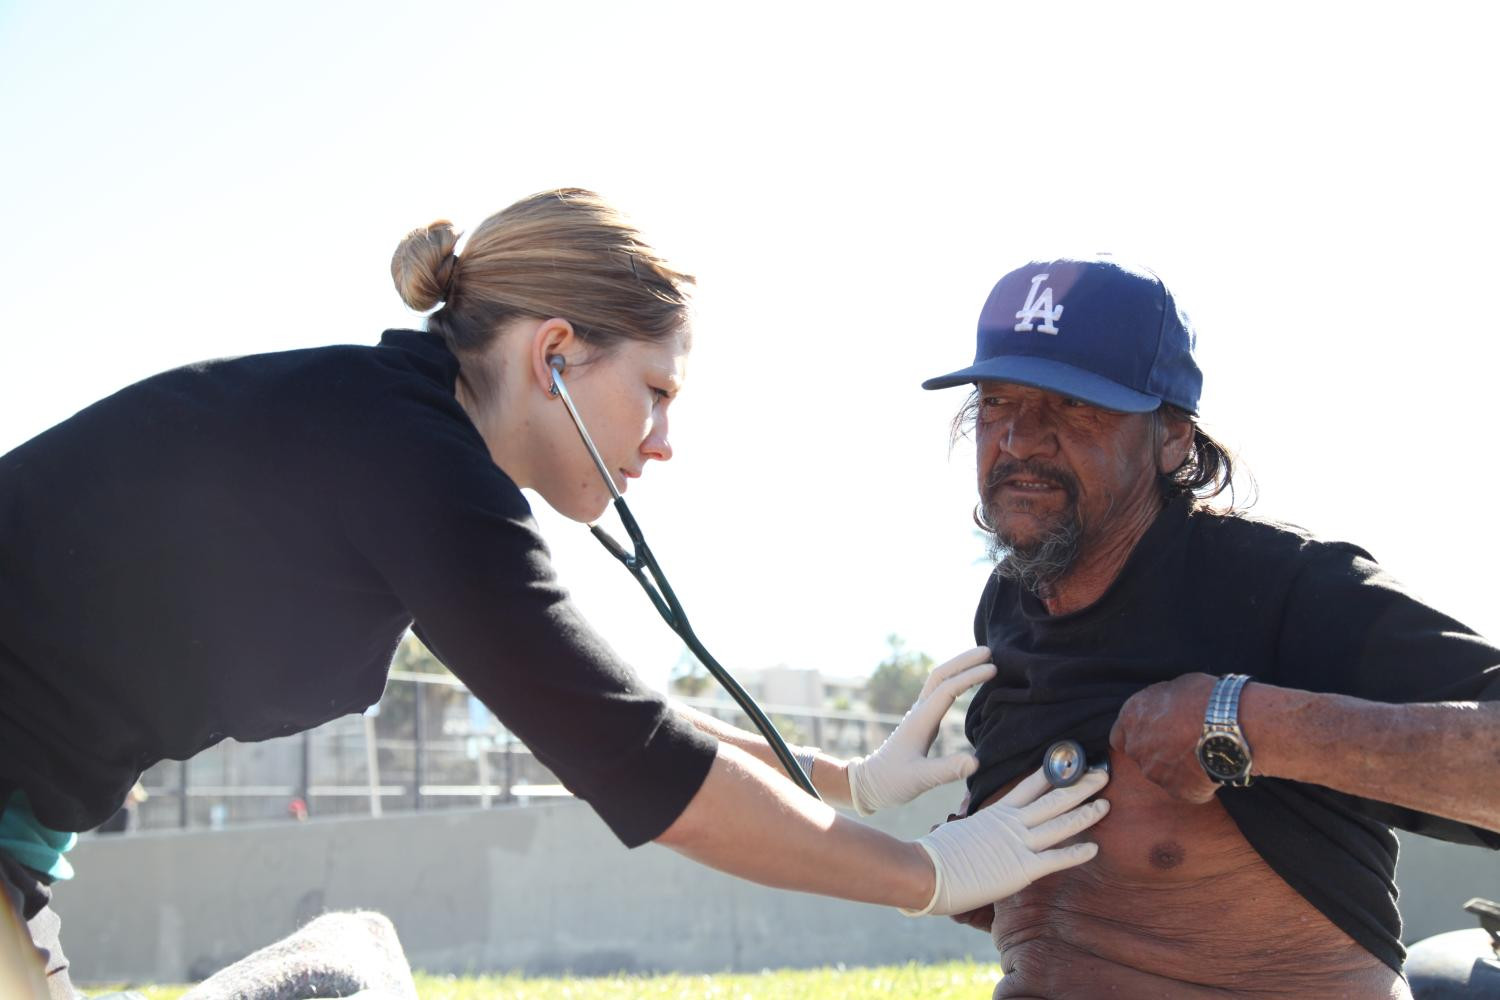 Carrie Kowalski, Physician Assistant, examines a patient at Venice Beach on street medicine rounds in 2012.  Taken by Margaret Molloy.